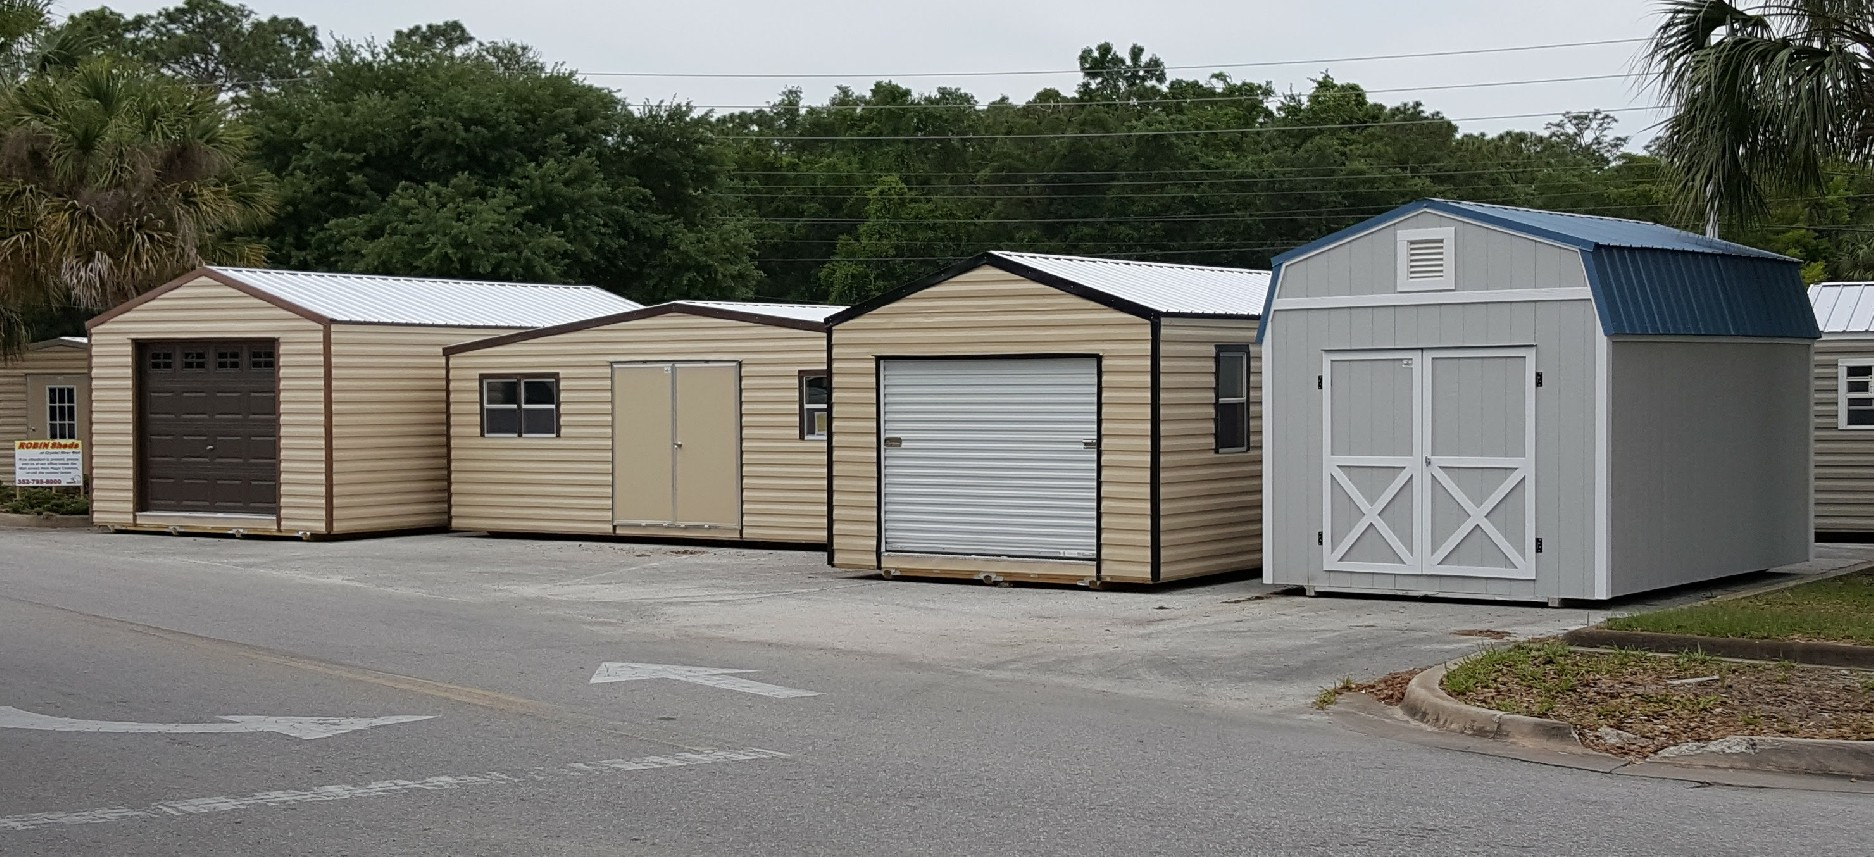 Sheds metal buildings garages pole barns carports for Barns and garages